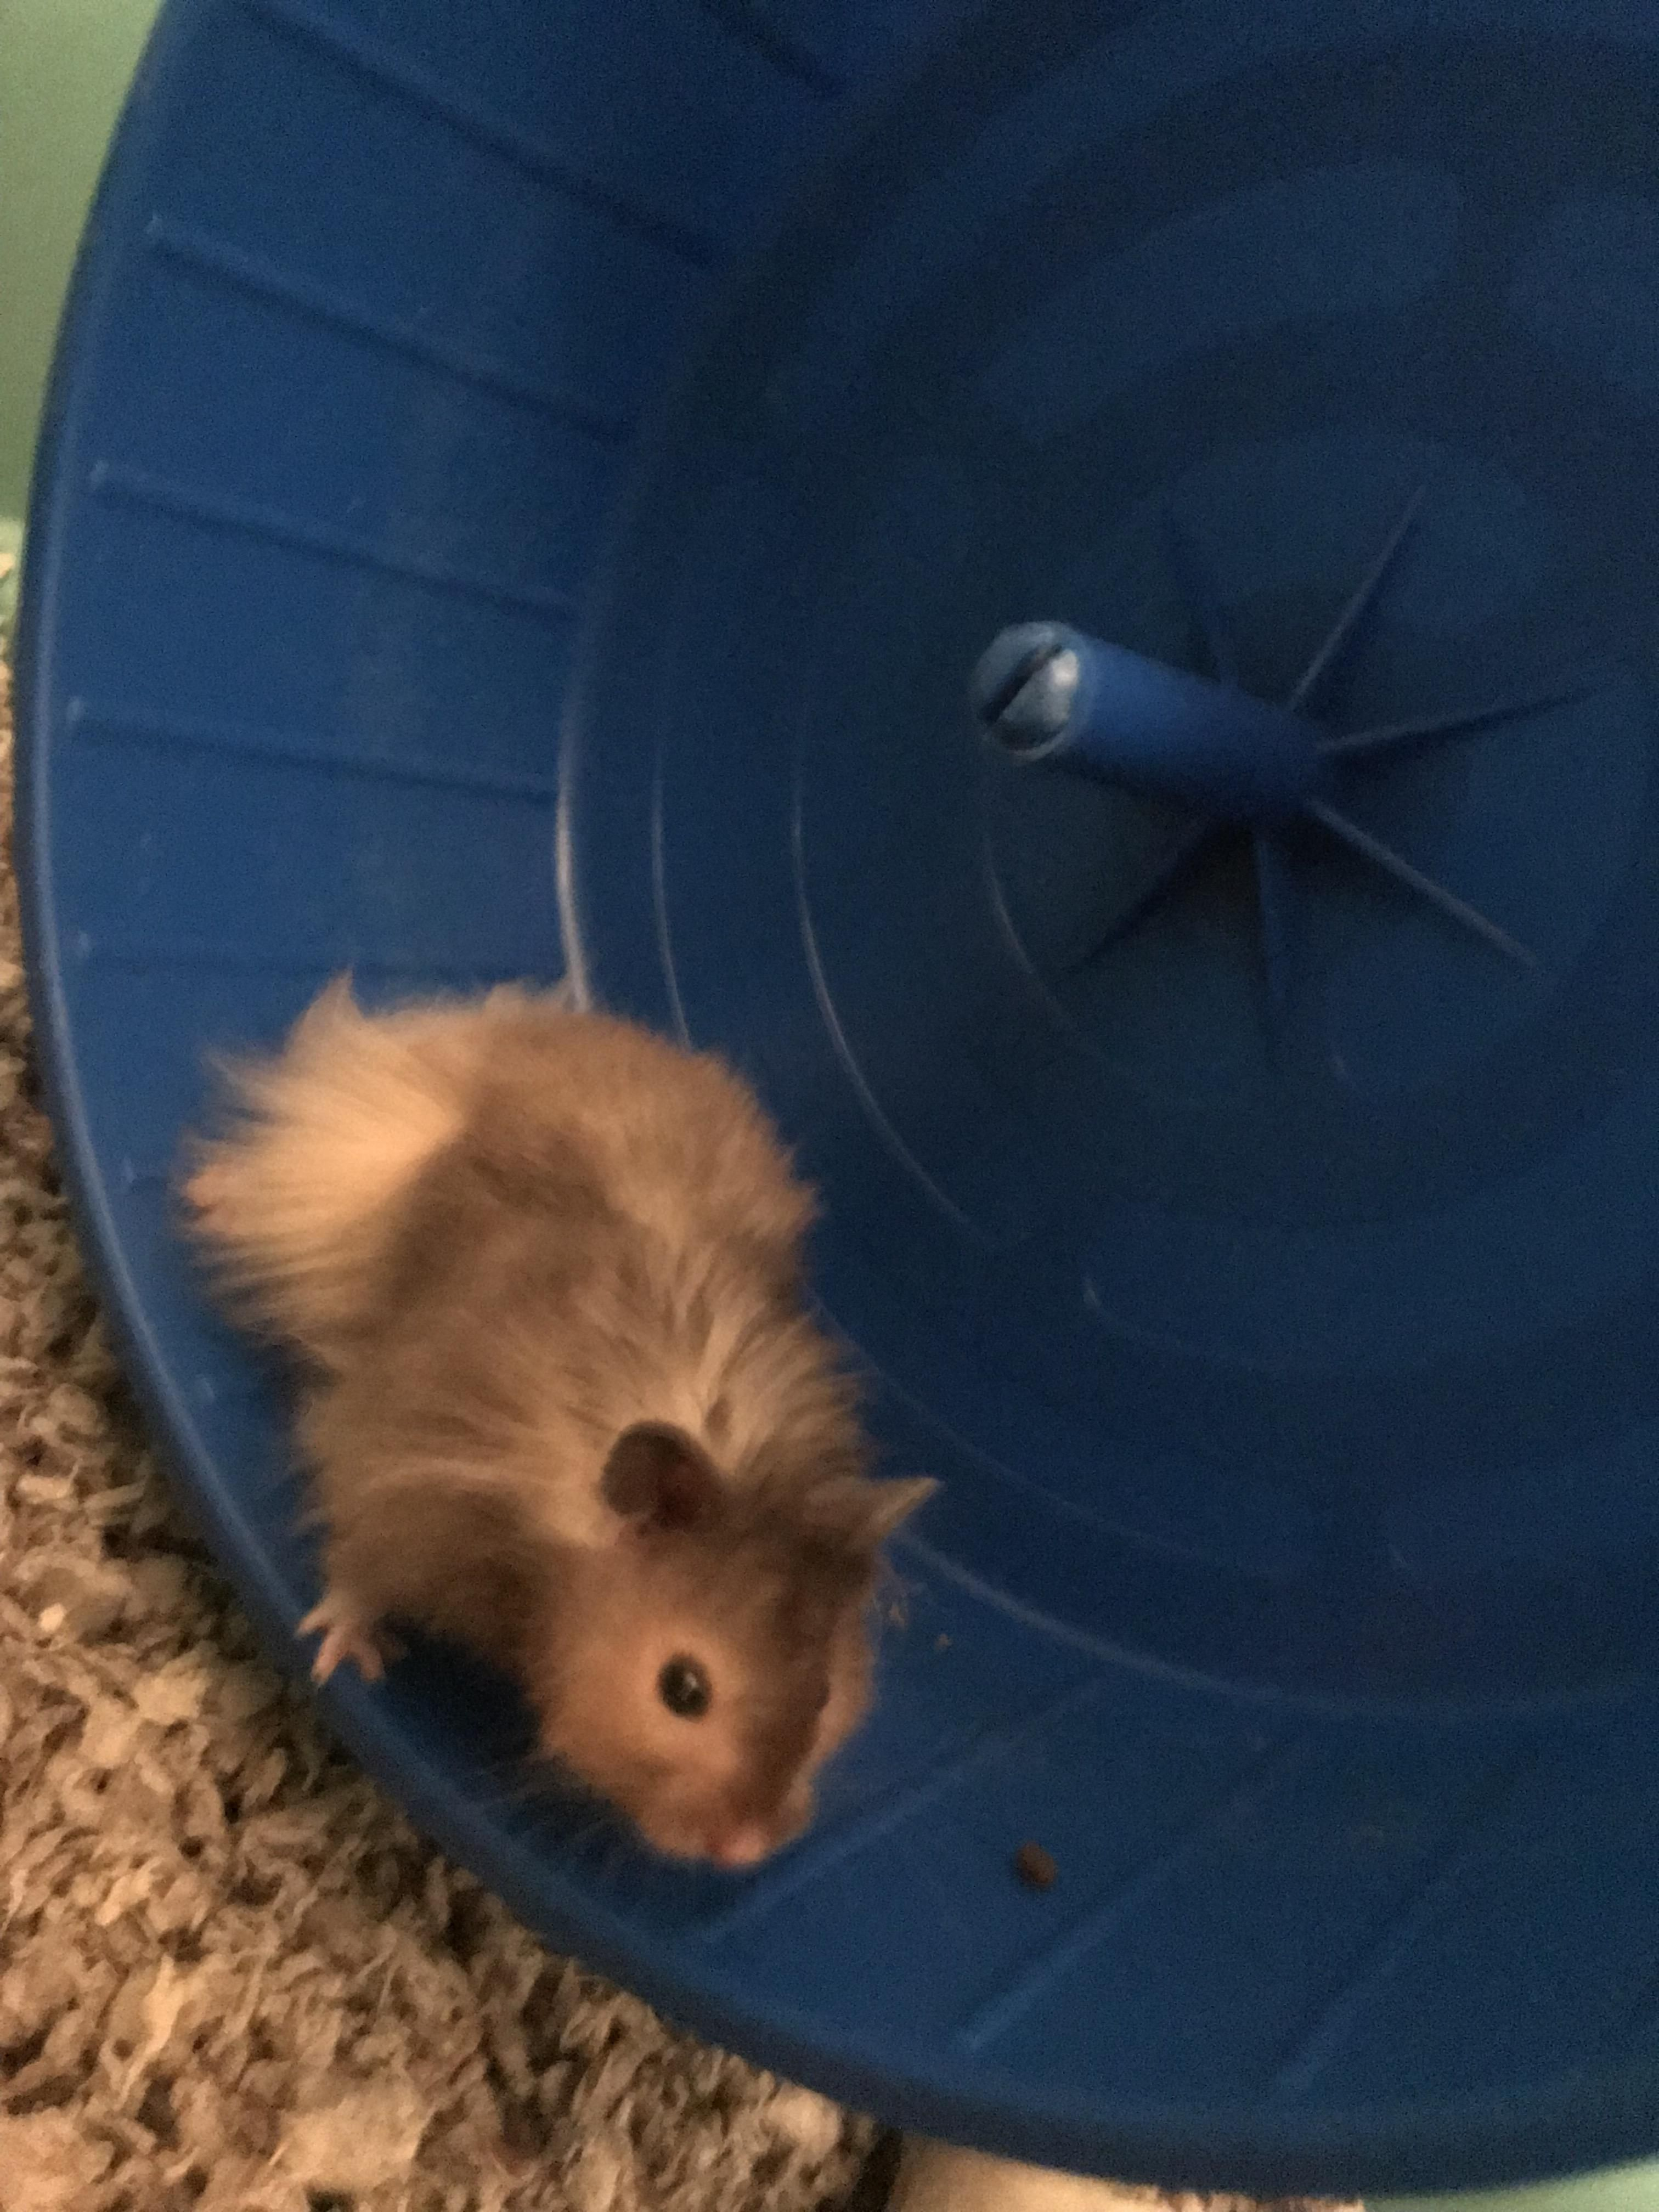 Meet Cheerio My Long Haired Syrianhttps I Redd It Tdrh0x5lm0j01 Jpg Long Haired Hamster Hamster Life Cute Hamsters